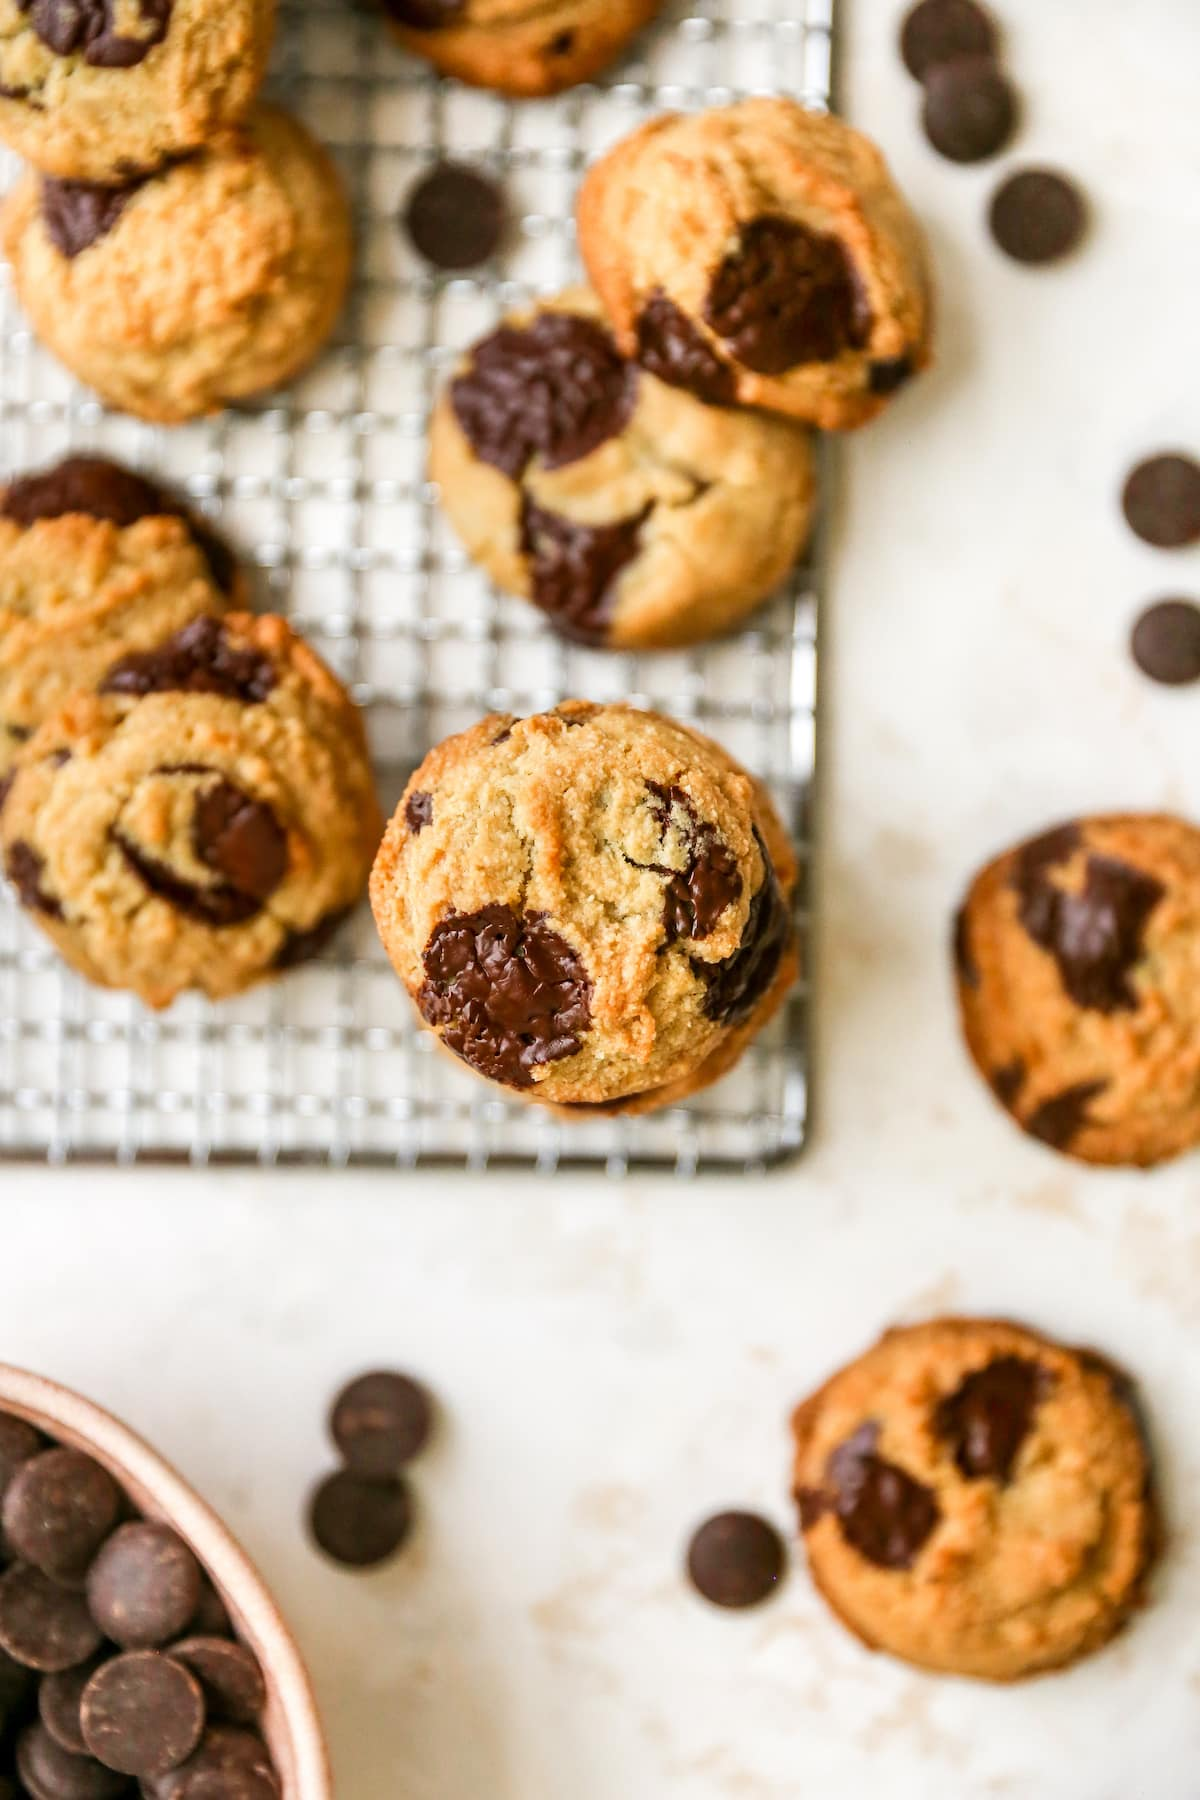 Almond flour chocolate chip cookies on a table and cooling rack surrounded by chocolate chips.